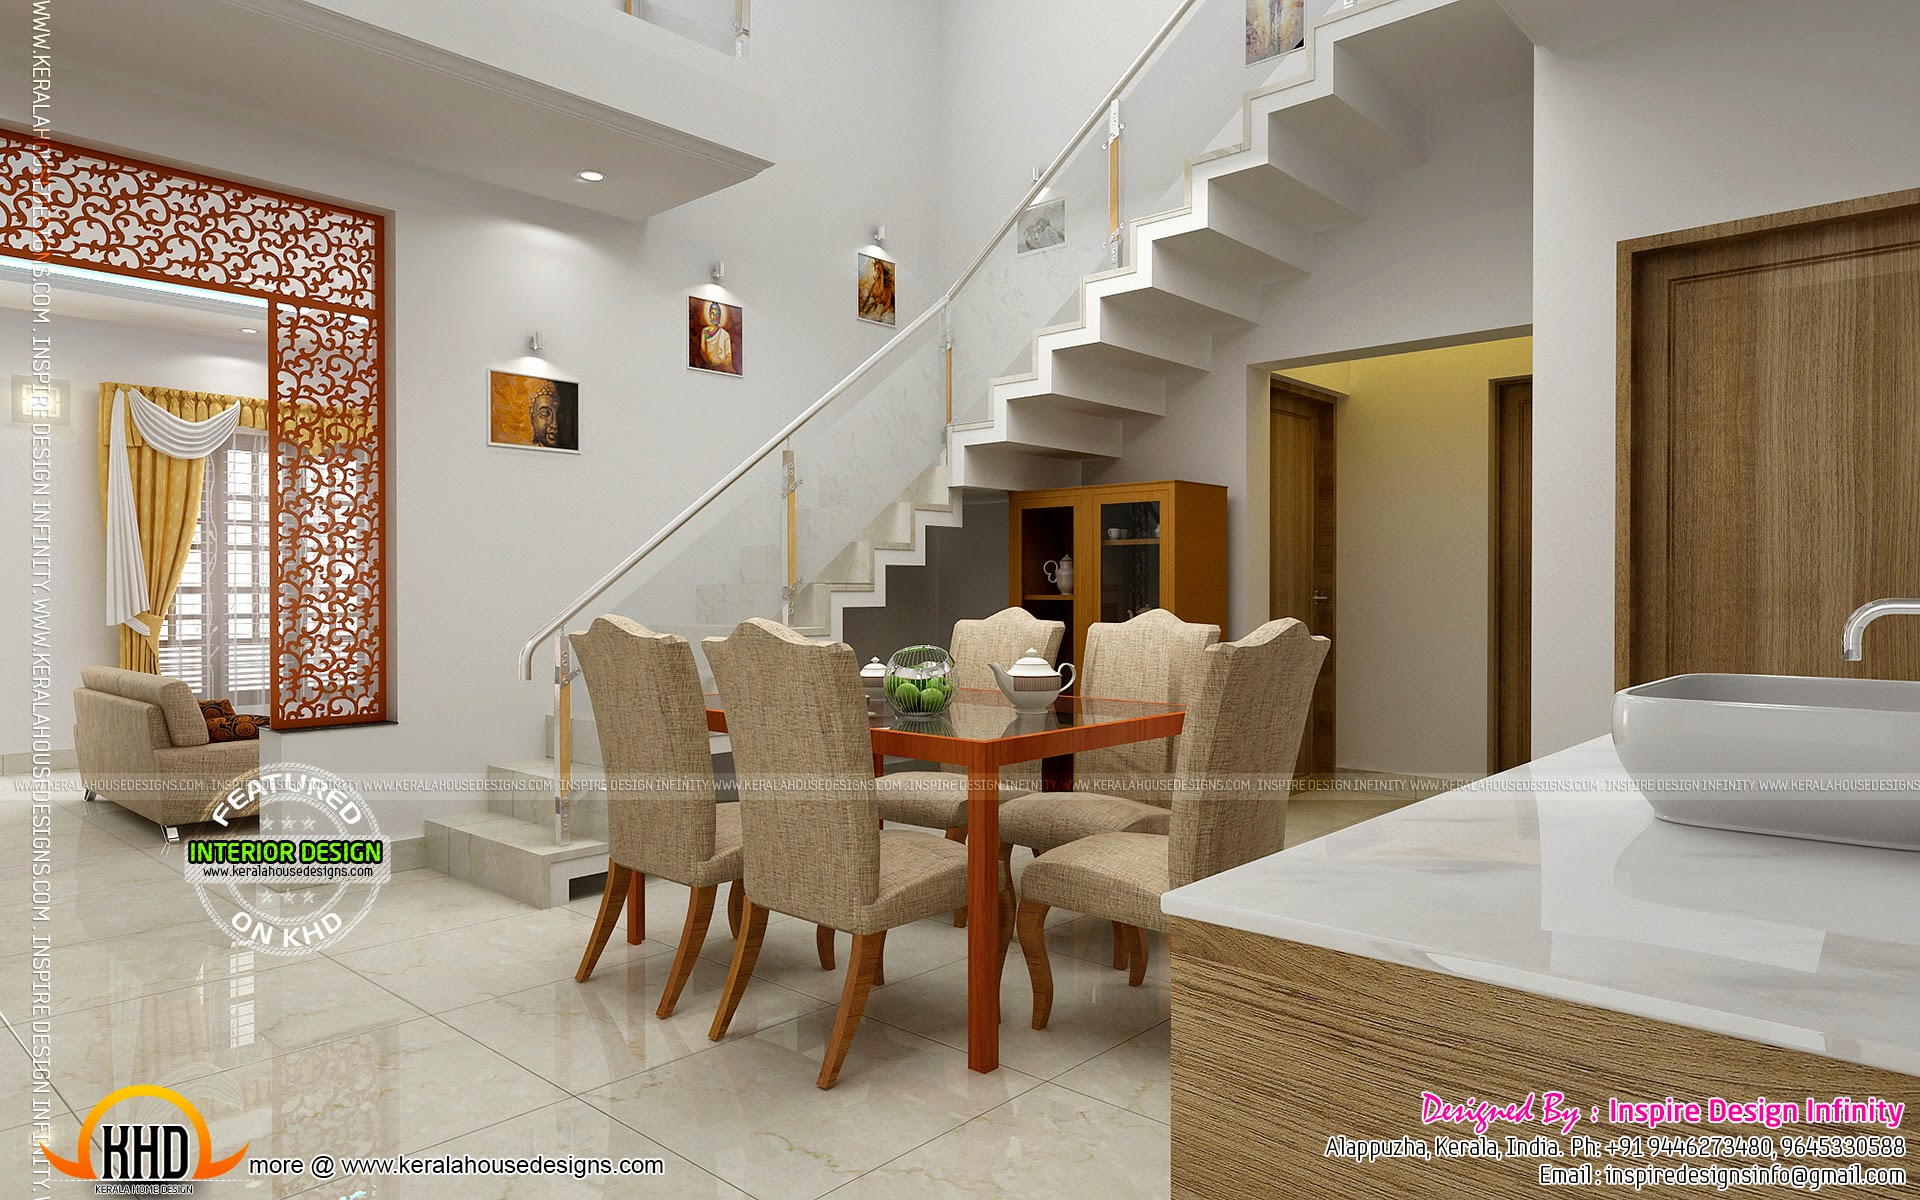 Dining room designs kerala home design and floor plans for Internal decoration of house